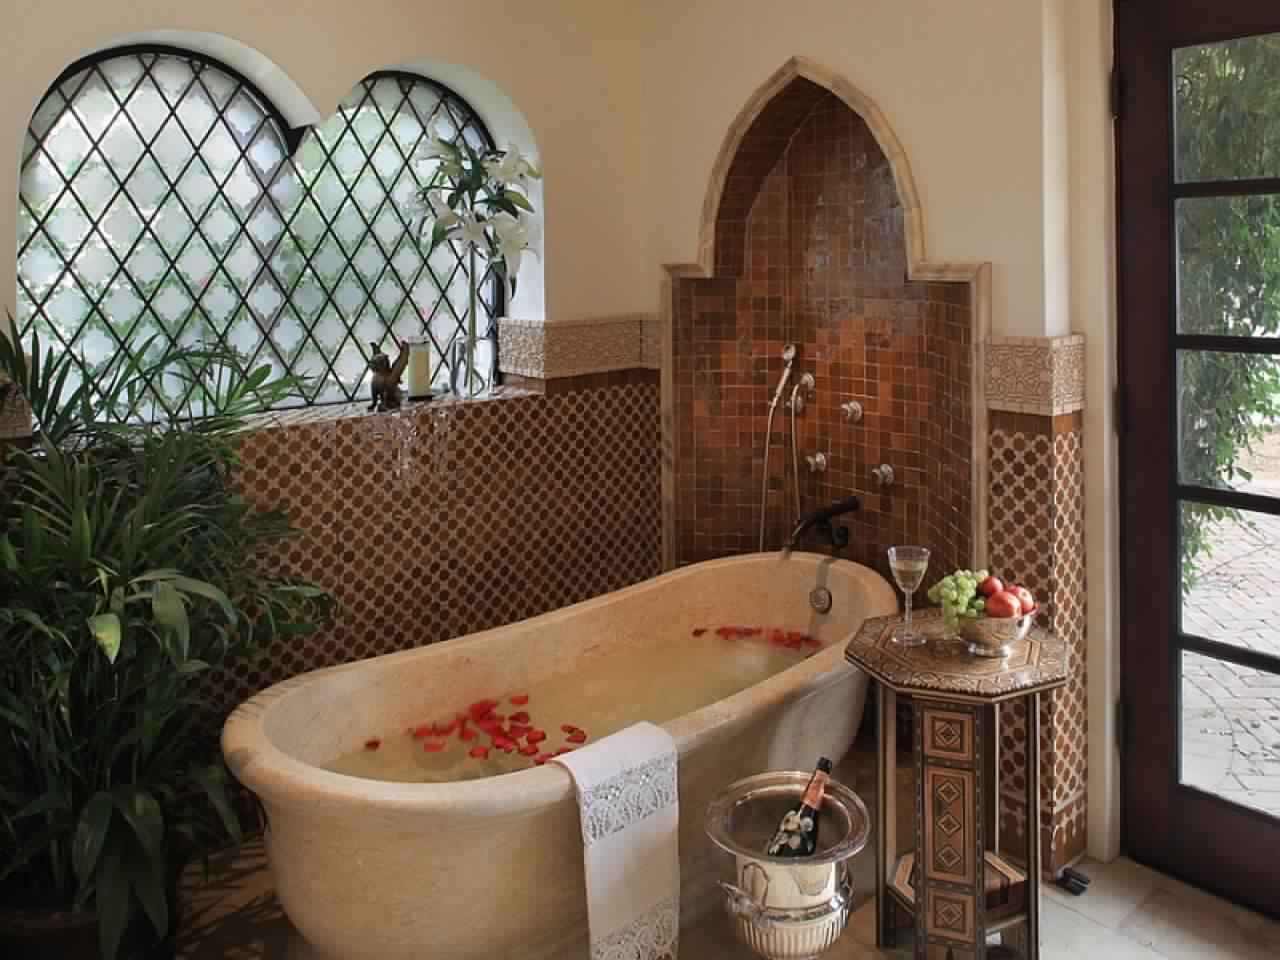 Rustic Bathroom Ideas-design ideas for bathroom Mediterranean style